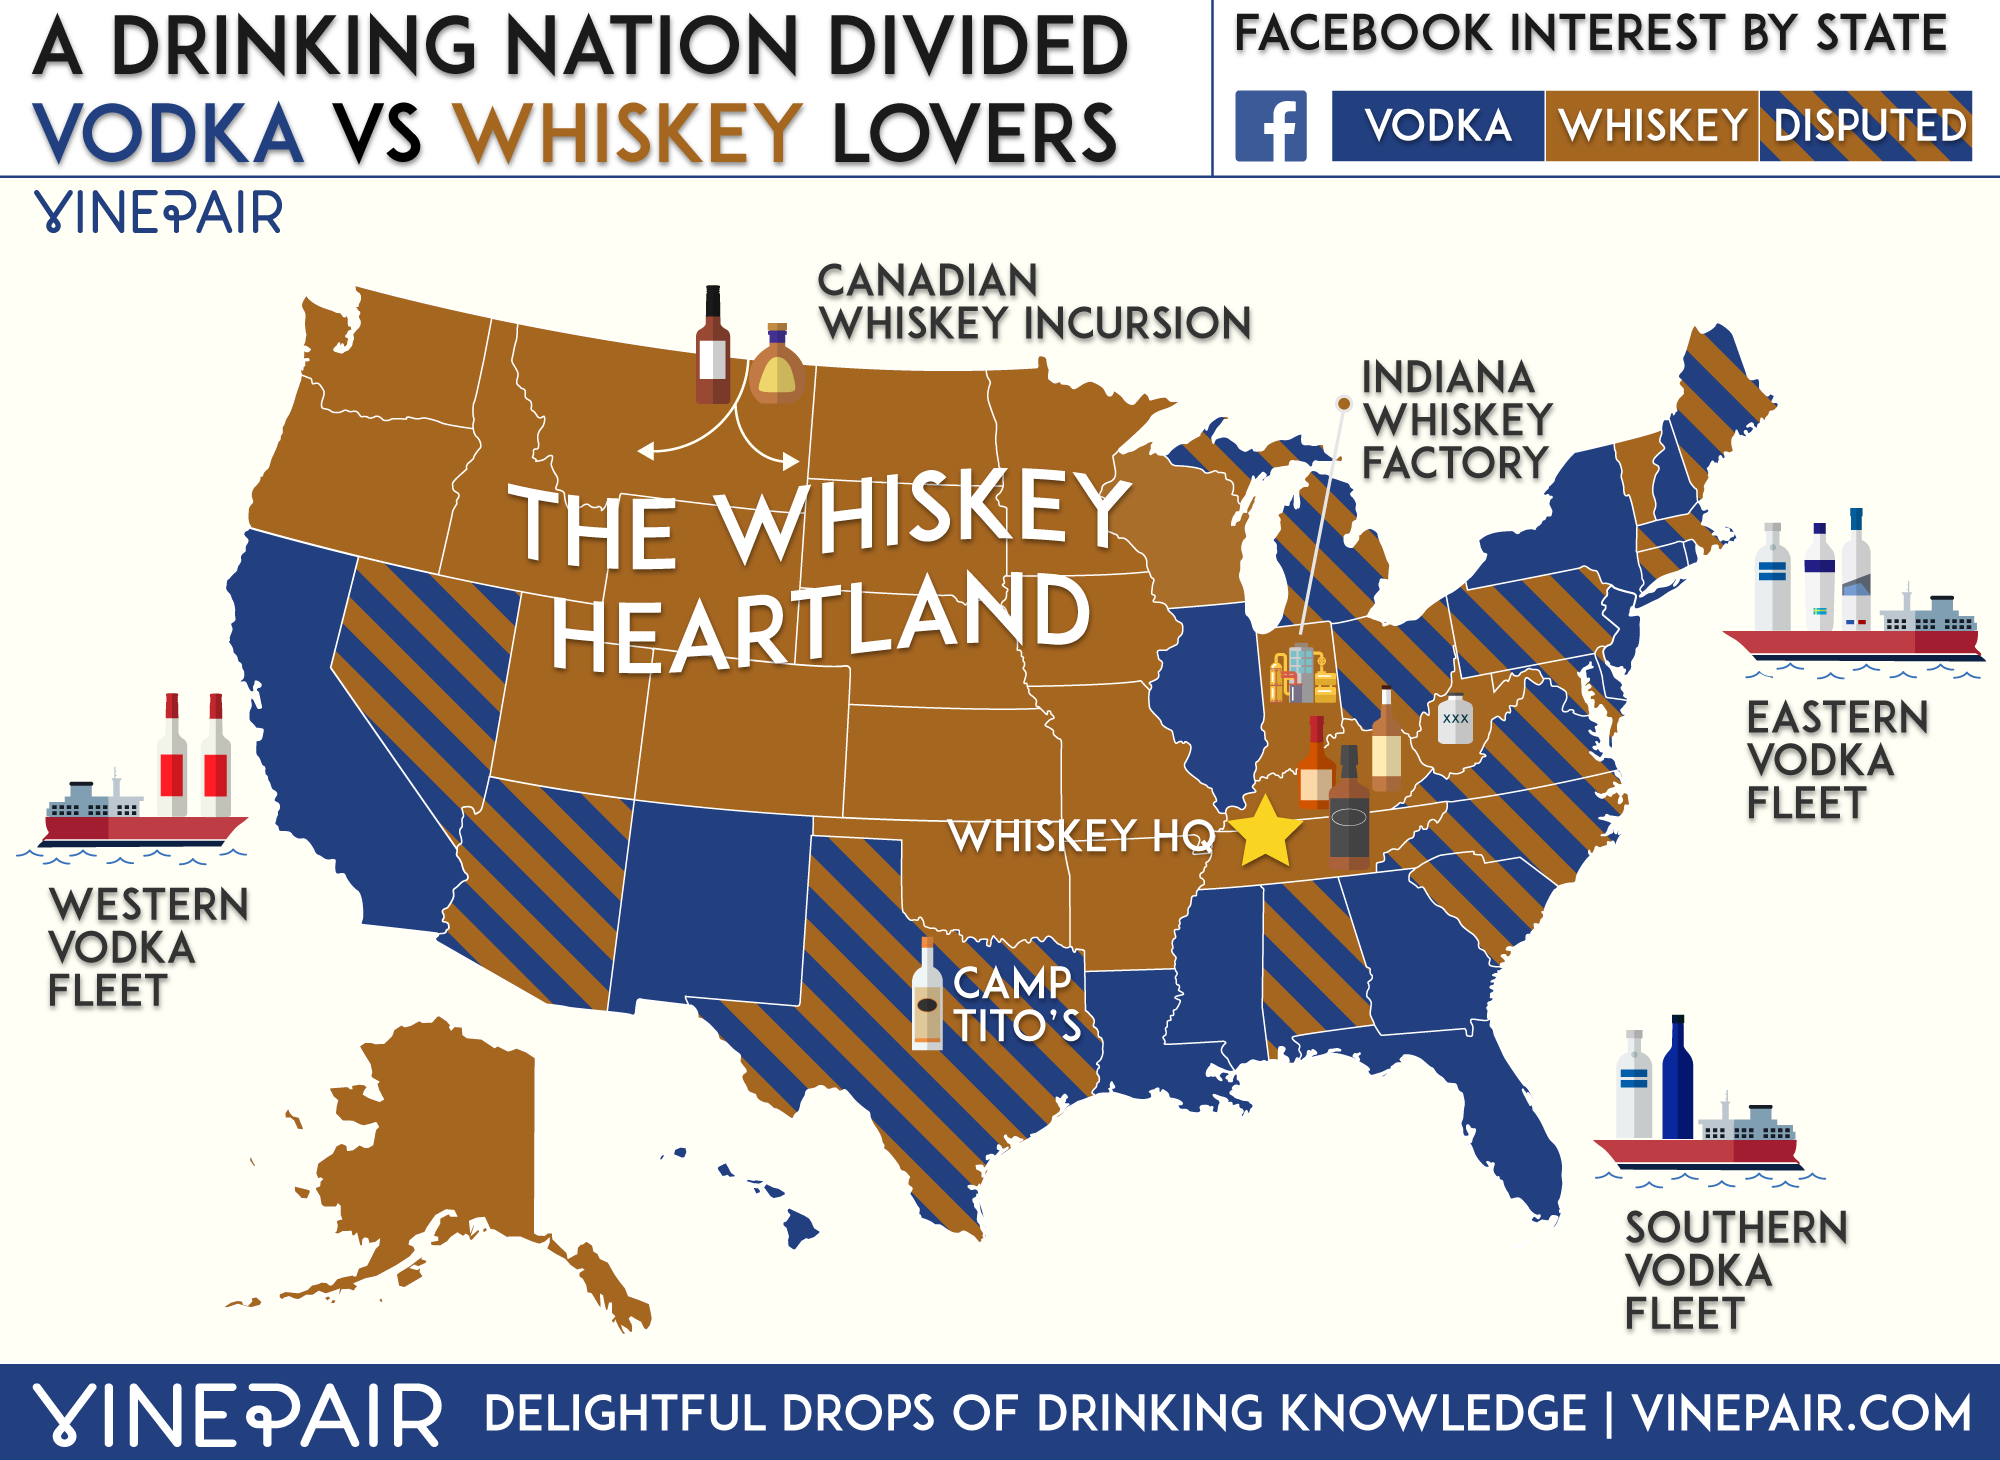 Map Vodka Vs Whiskey Lovers By State